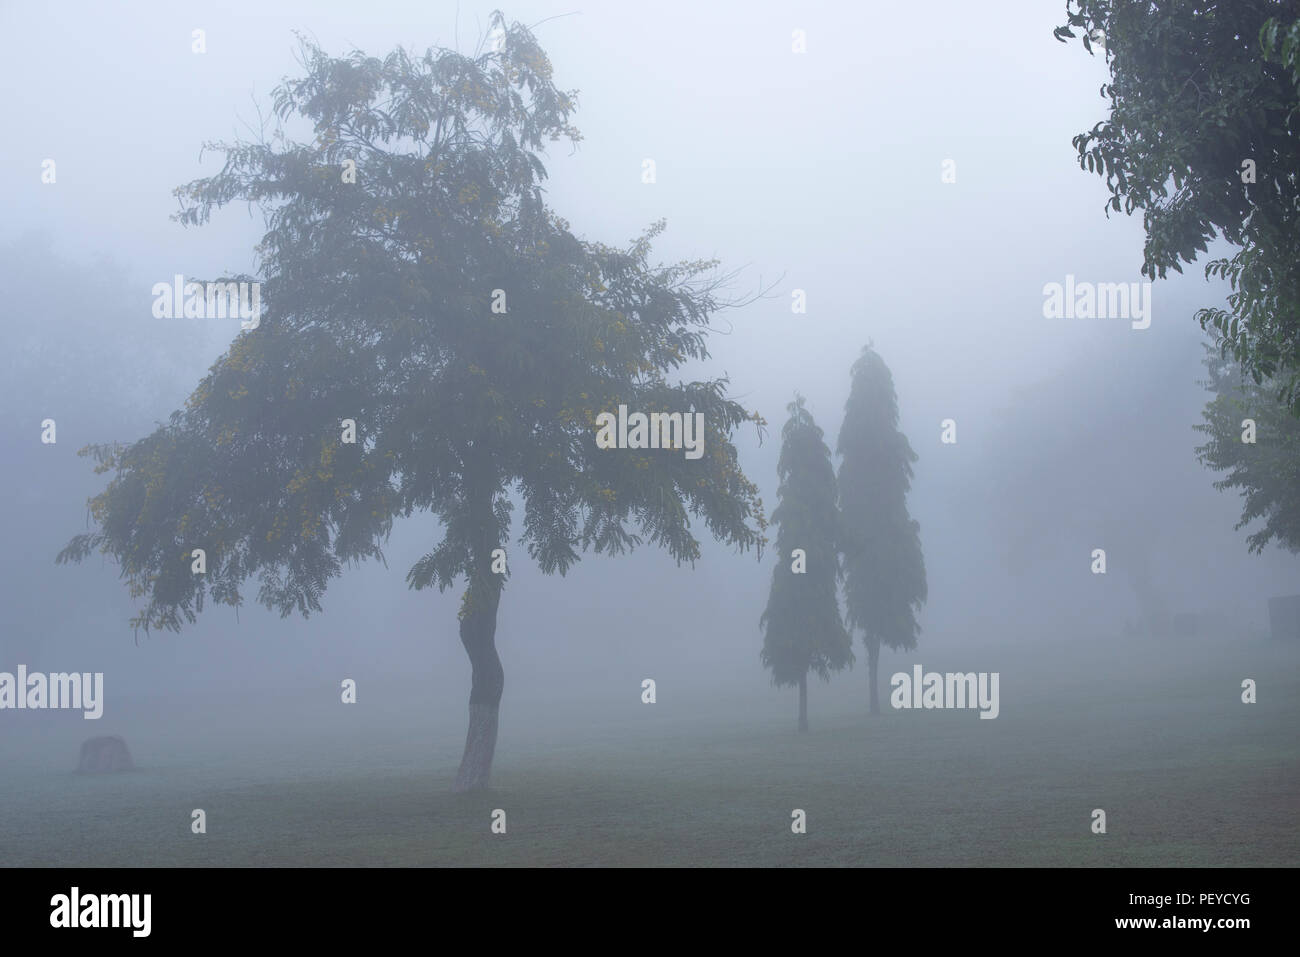 Trees with various shapes and contours in a garden of Khajuraho temple complex with very thick fog forming a mysterious landscape Madhya Pradesh India - Stock Image